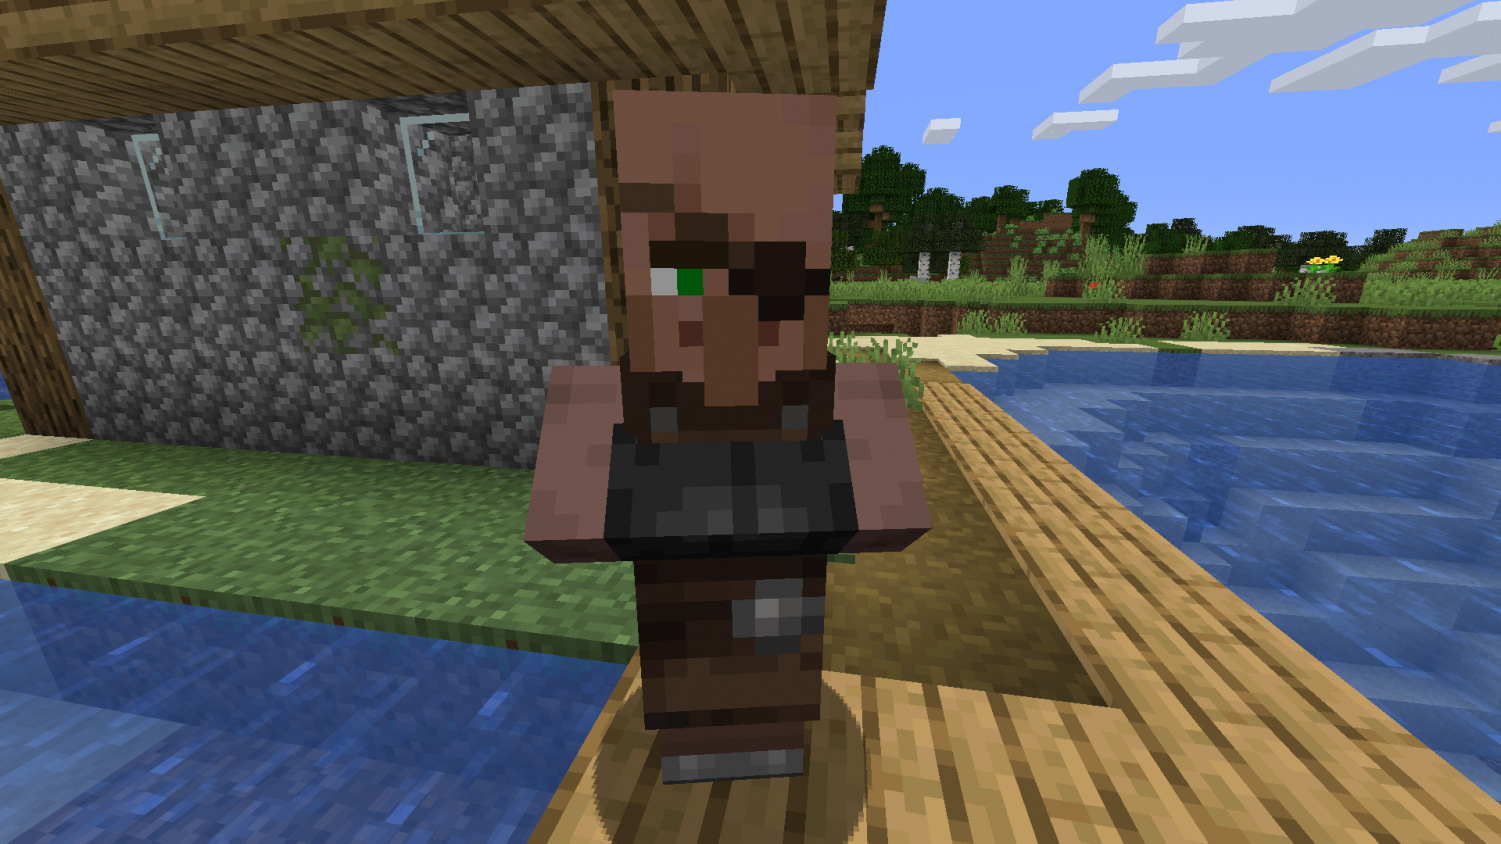 "An ""eyepatch villager"", one of many artificially-intelligent entities in the video game Minecraft, roams through its village. The villager is one of many tweaks to the popular game in the upcoming update known as Village and Pillage."